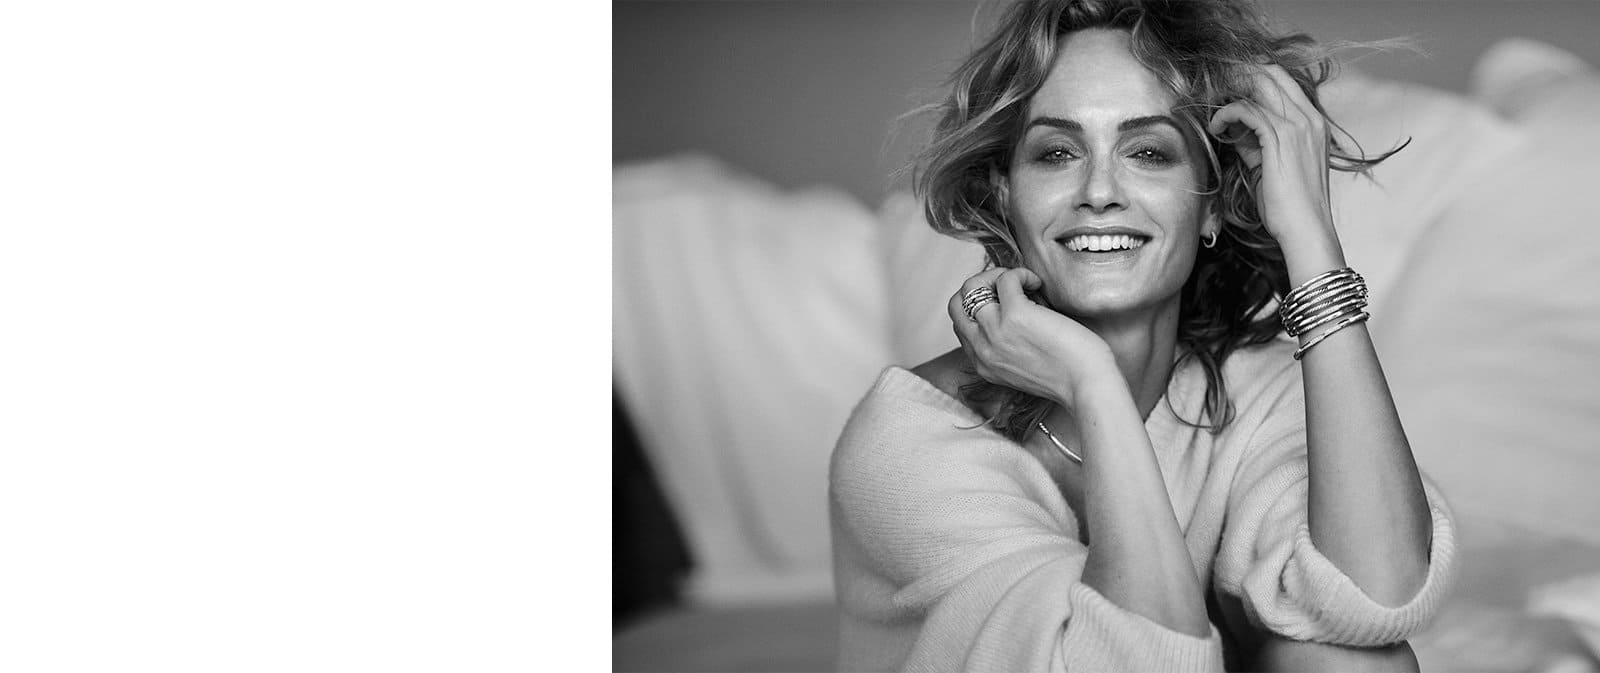 Model Amber Valletta wears multiple pieces of Tides jewellery in sterling silver with pavé white diamonds.